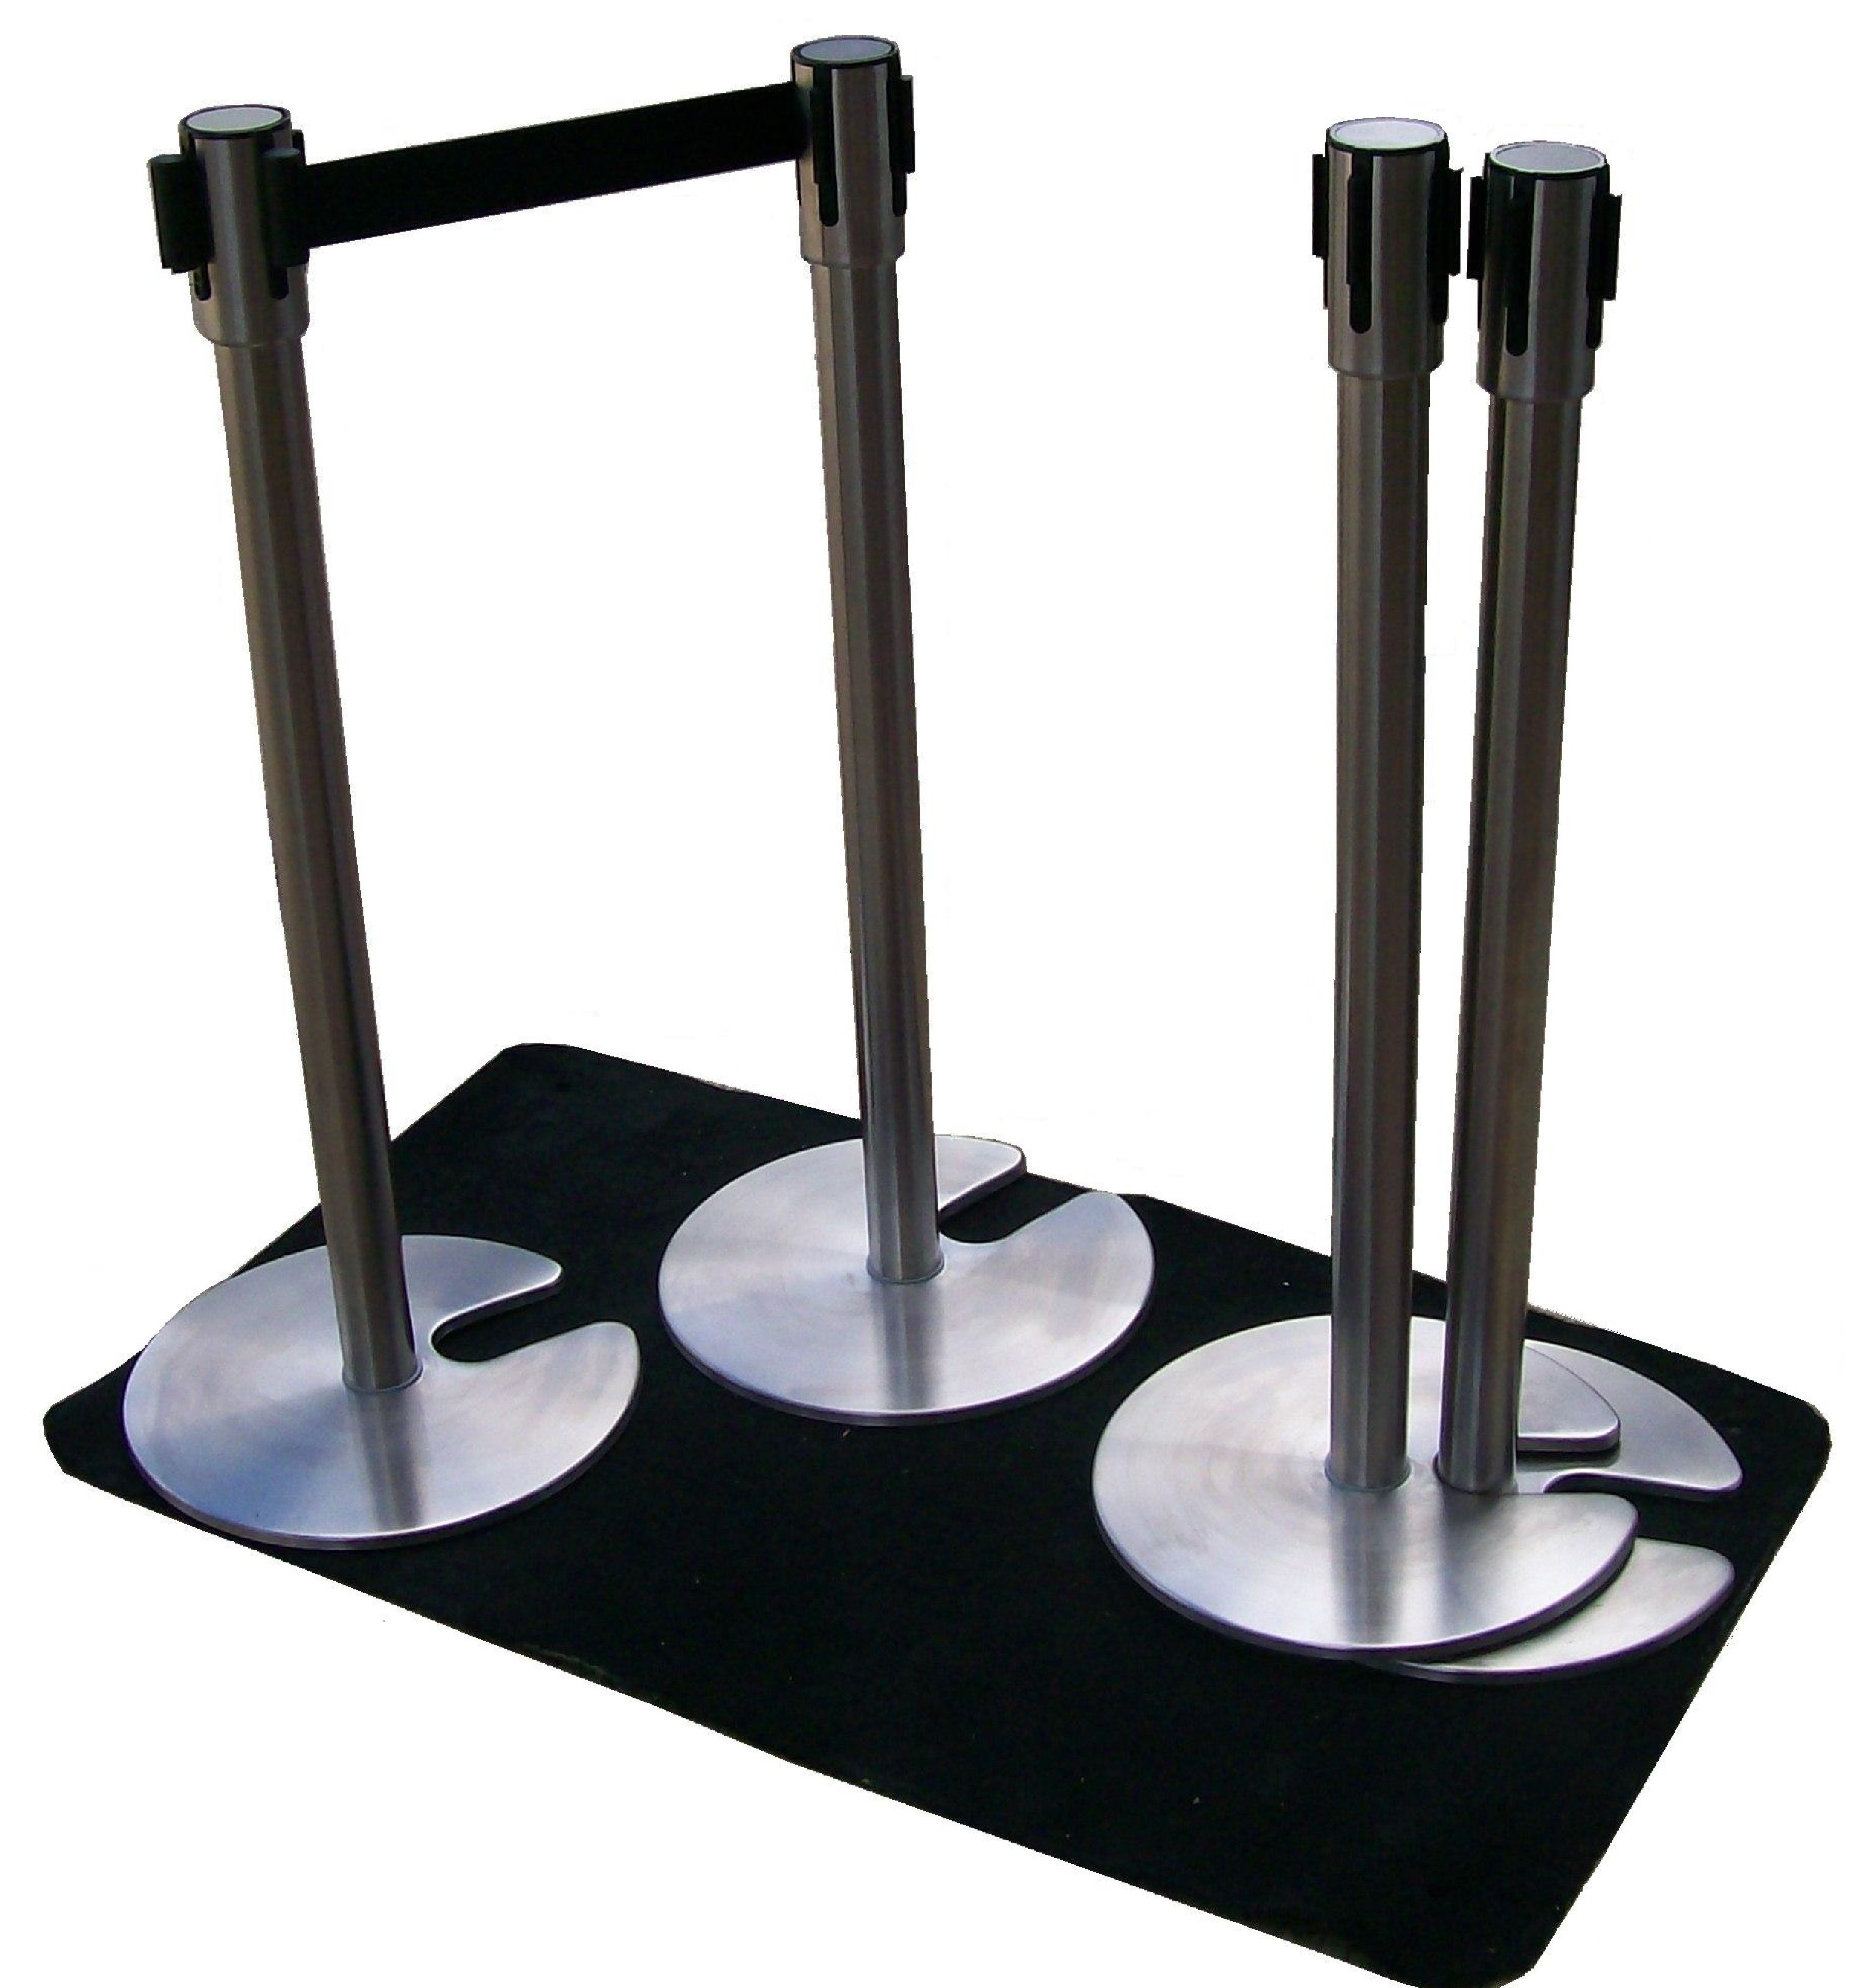 Crowd control stands specially designed to save storage